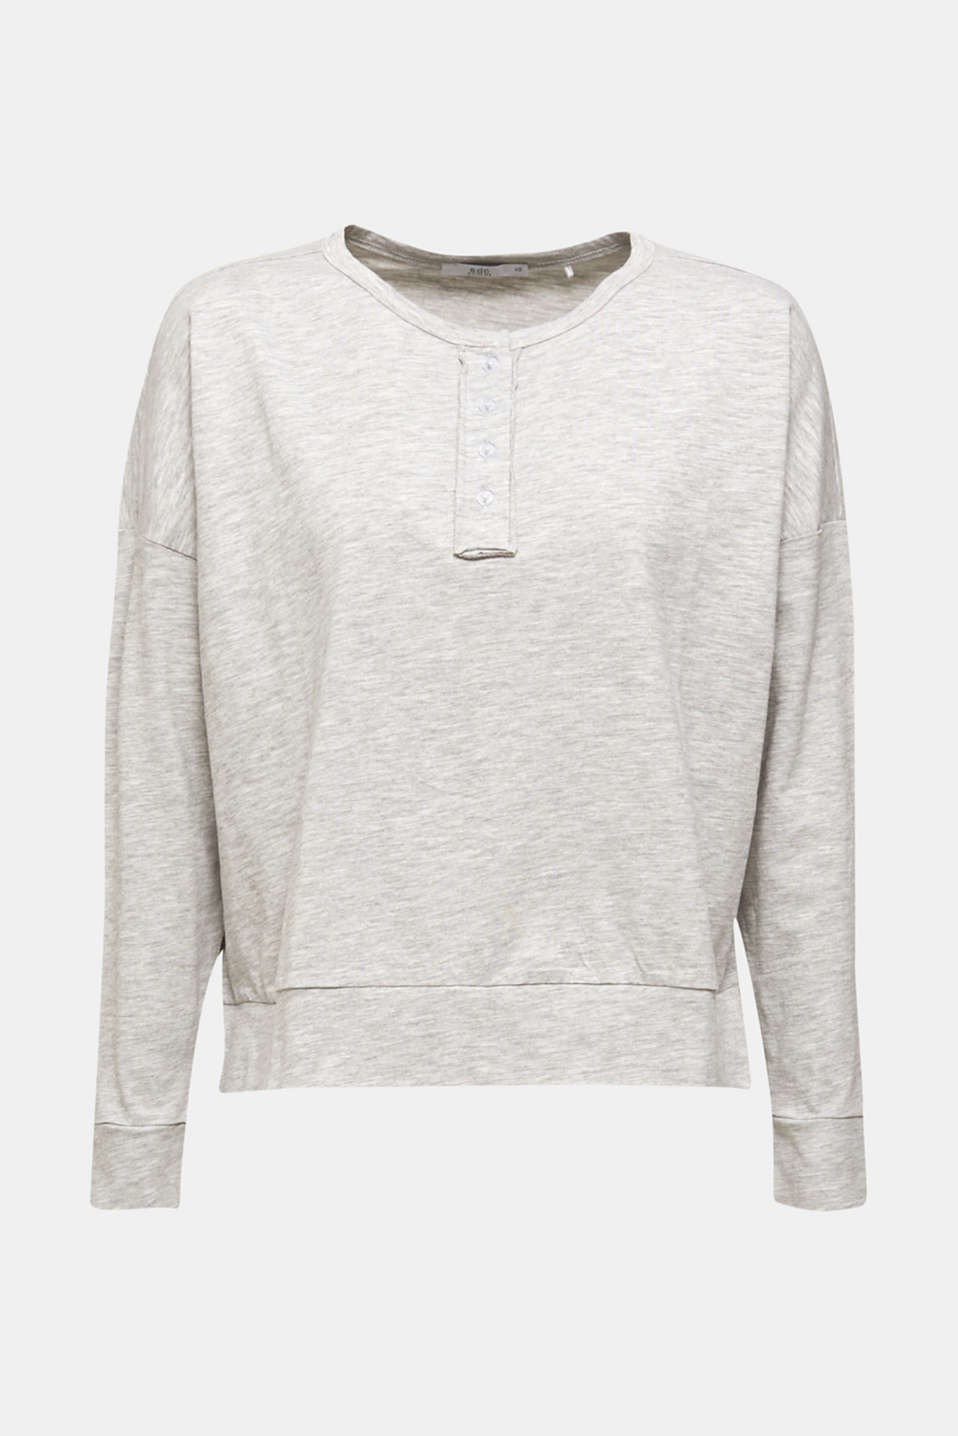 Melange Henley long sleeve top, LIGHT GREY 5, detail image number 6